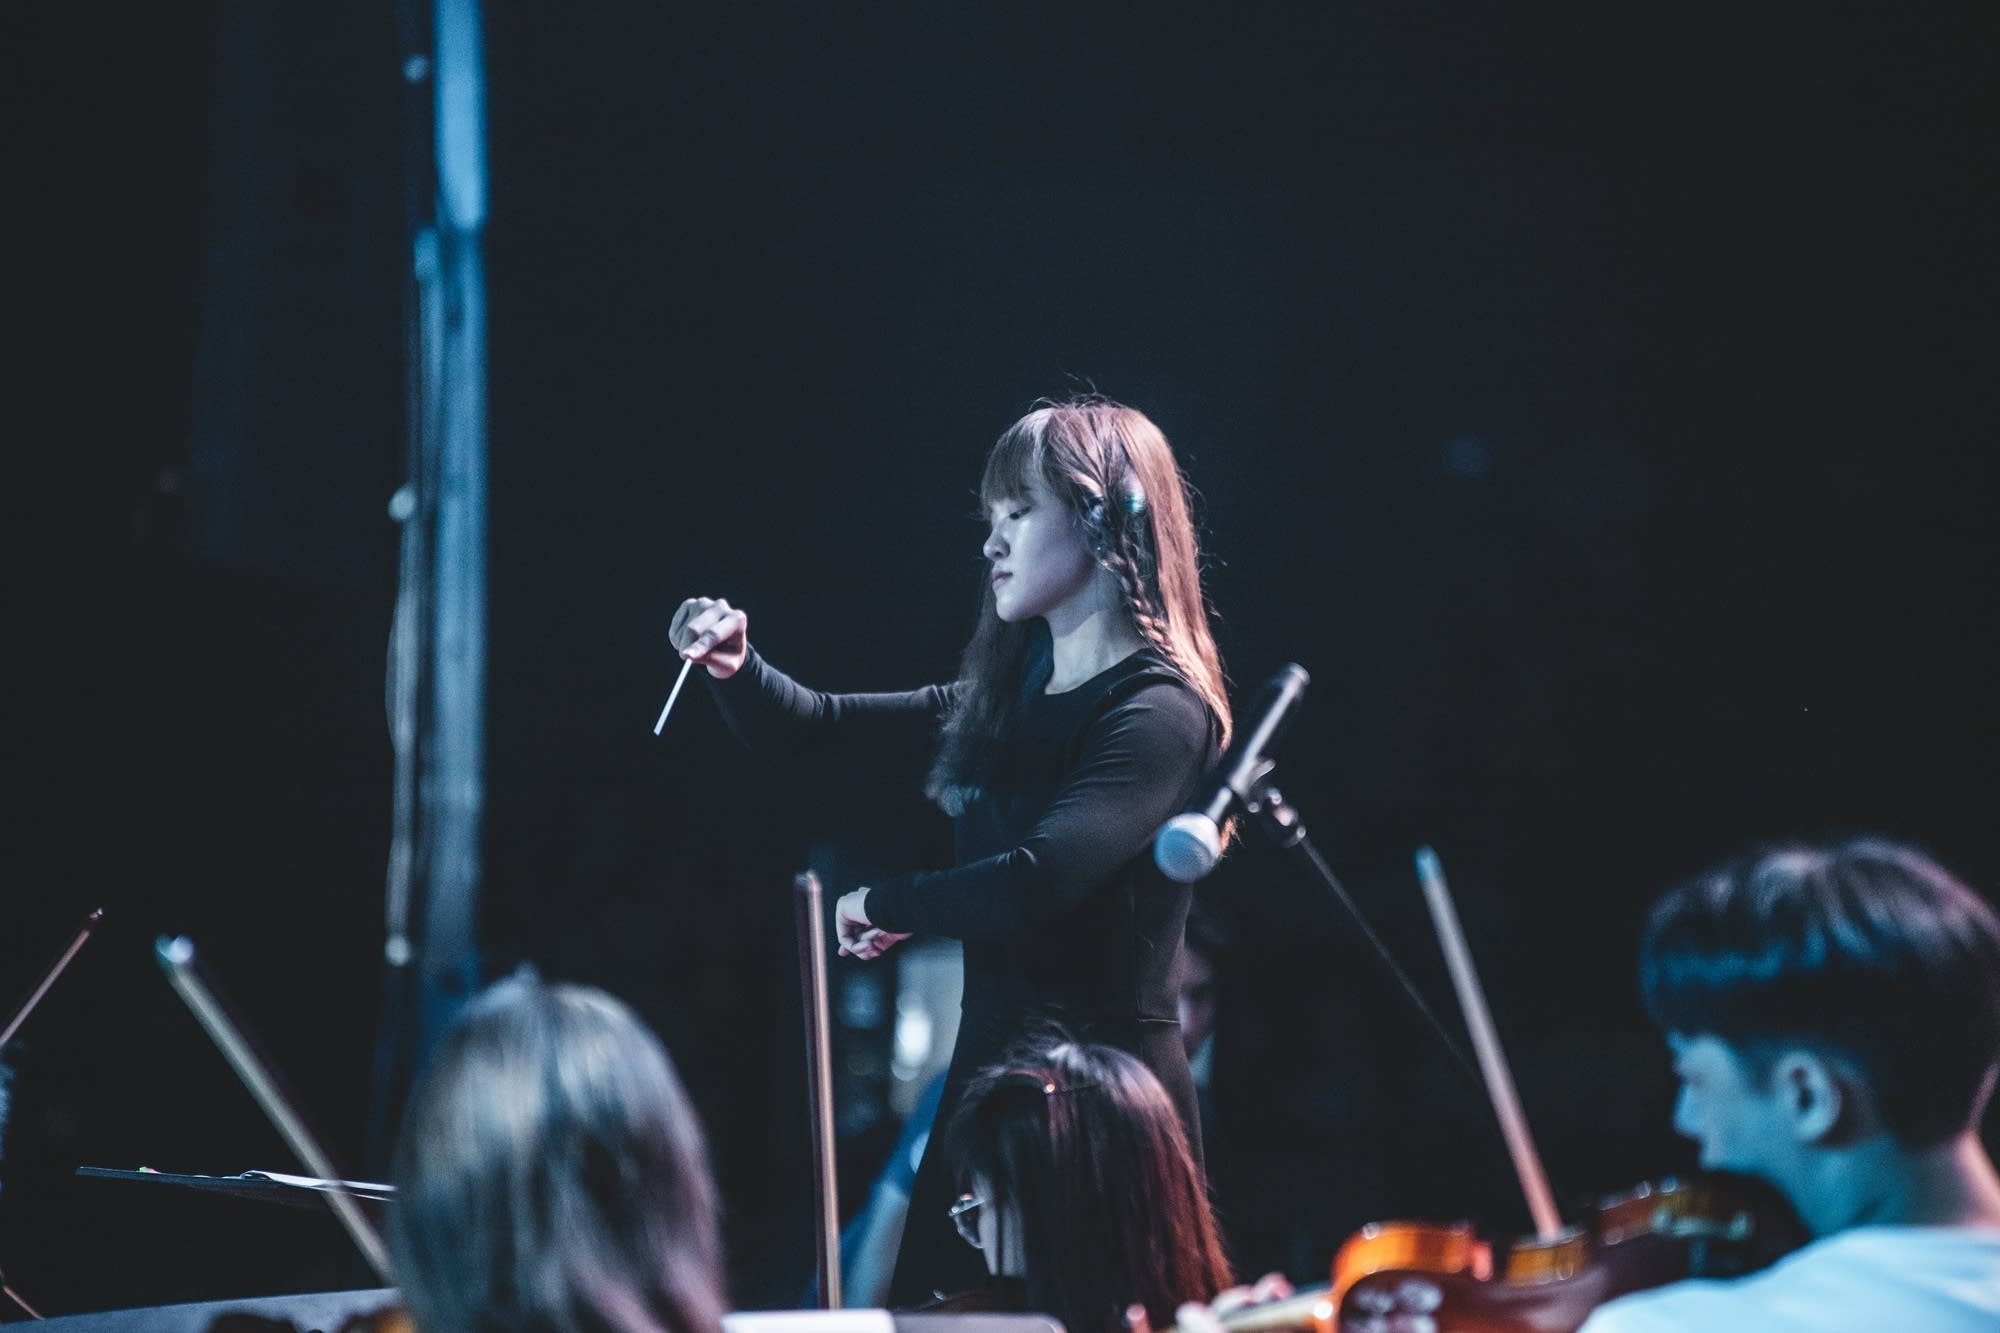 The conductor gives the orchestra the tempo.